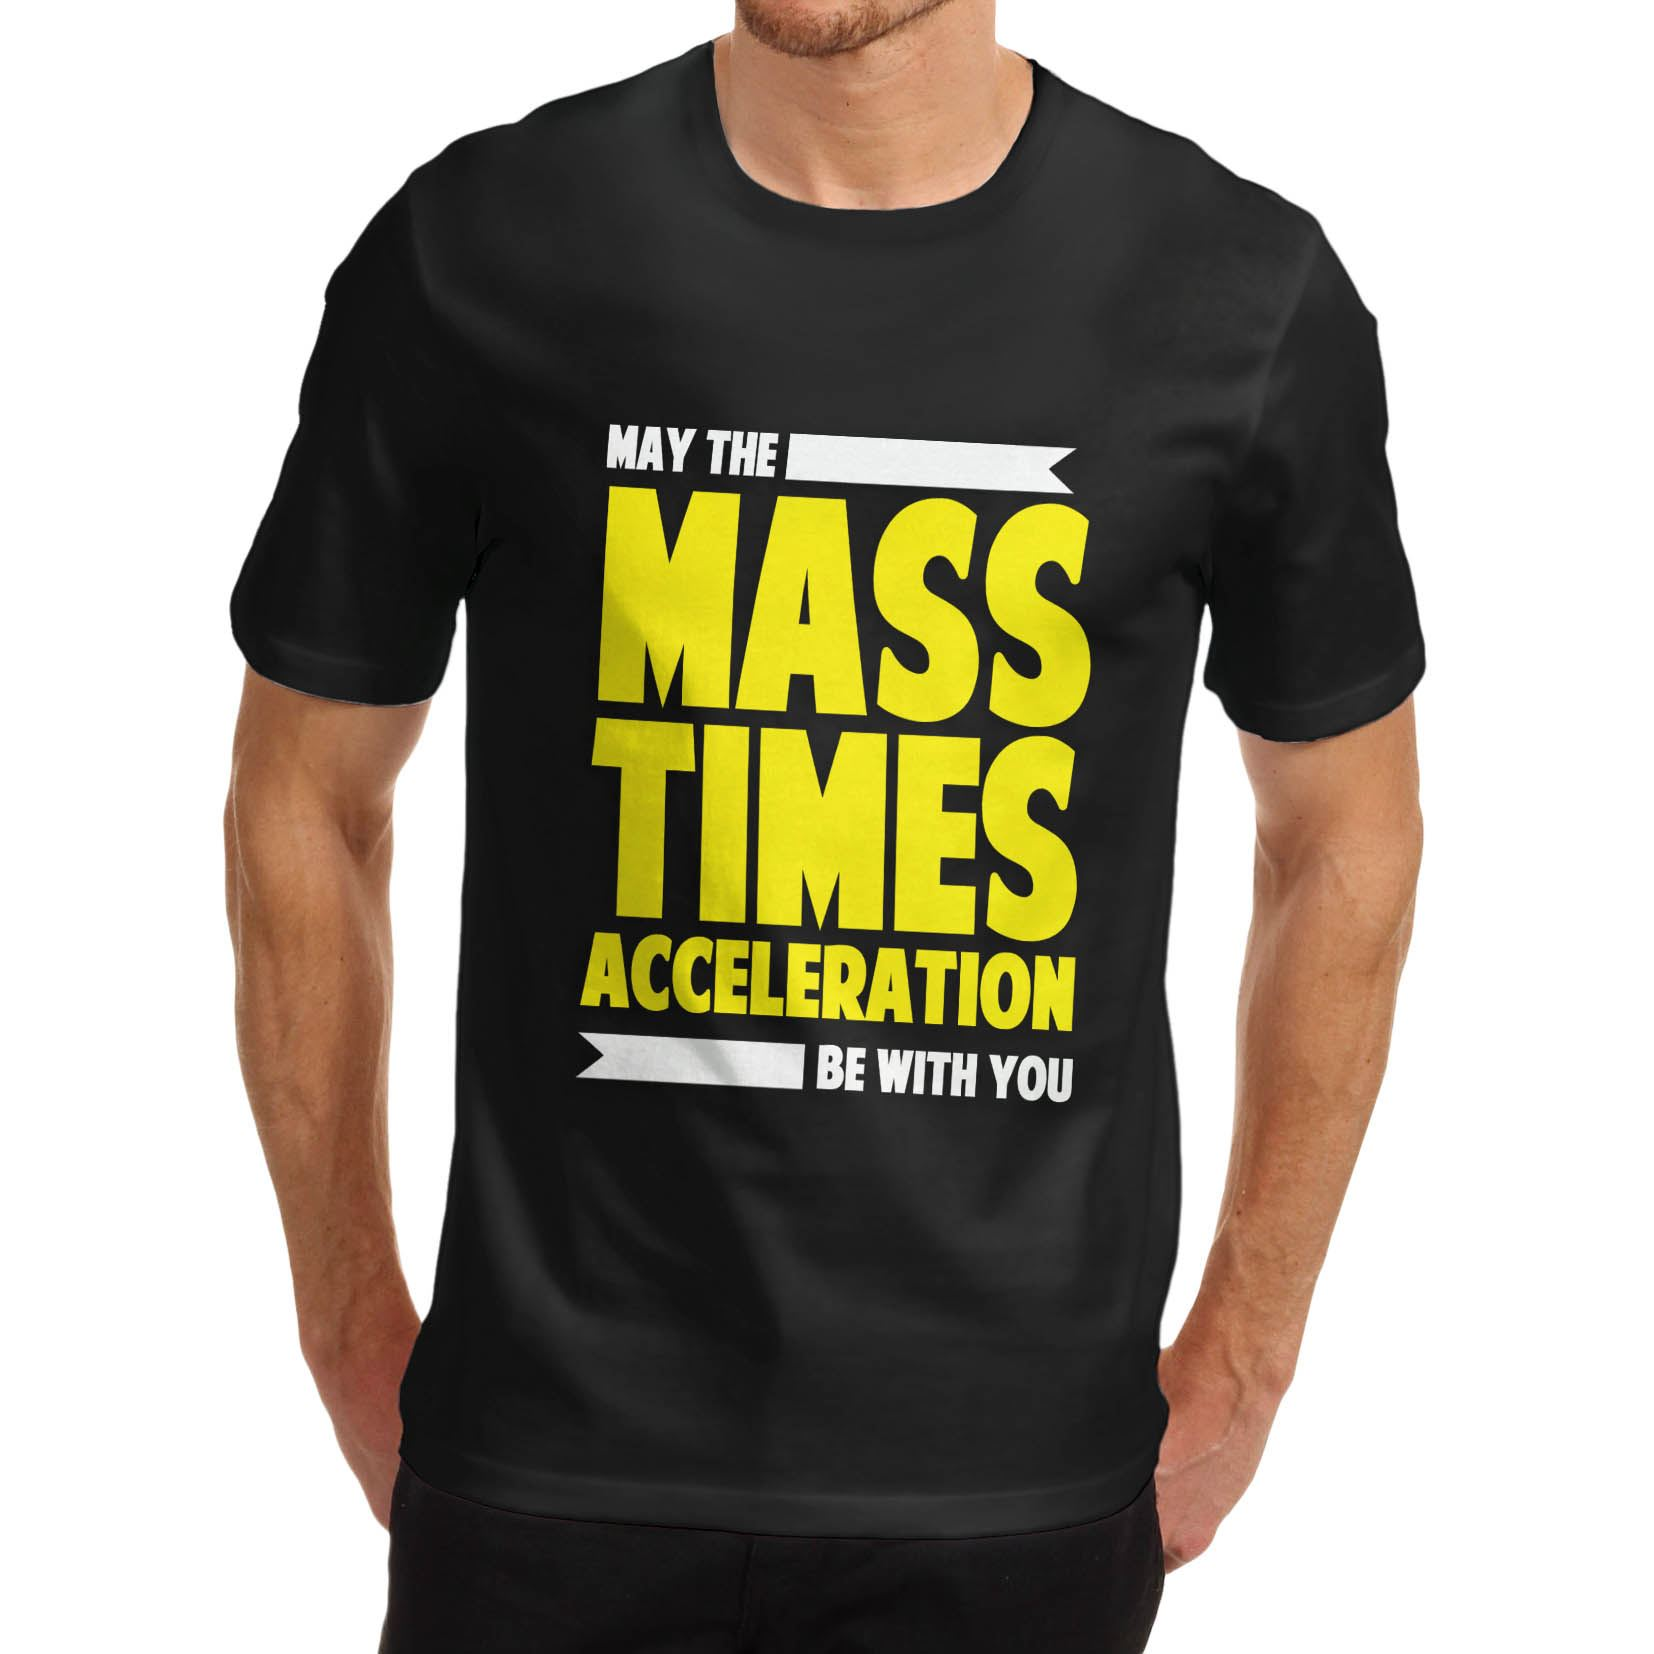 Men-039-s-May-The-Mass-Times-Acceleration-Be-With-You-Funny-T-Shirt